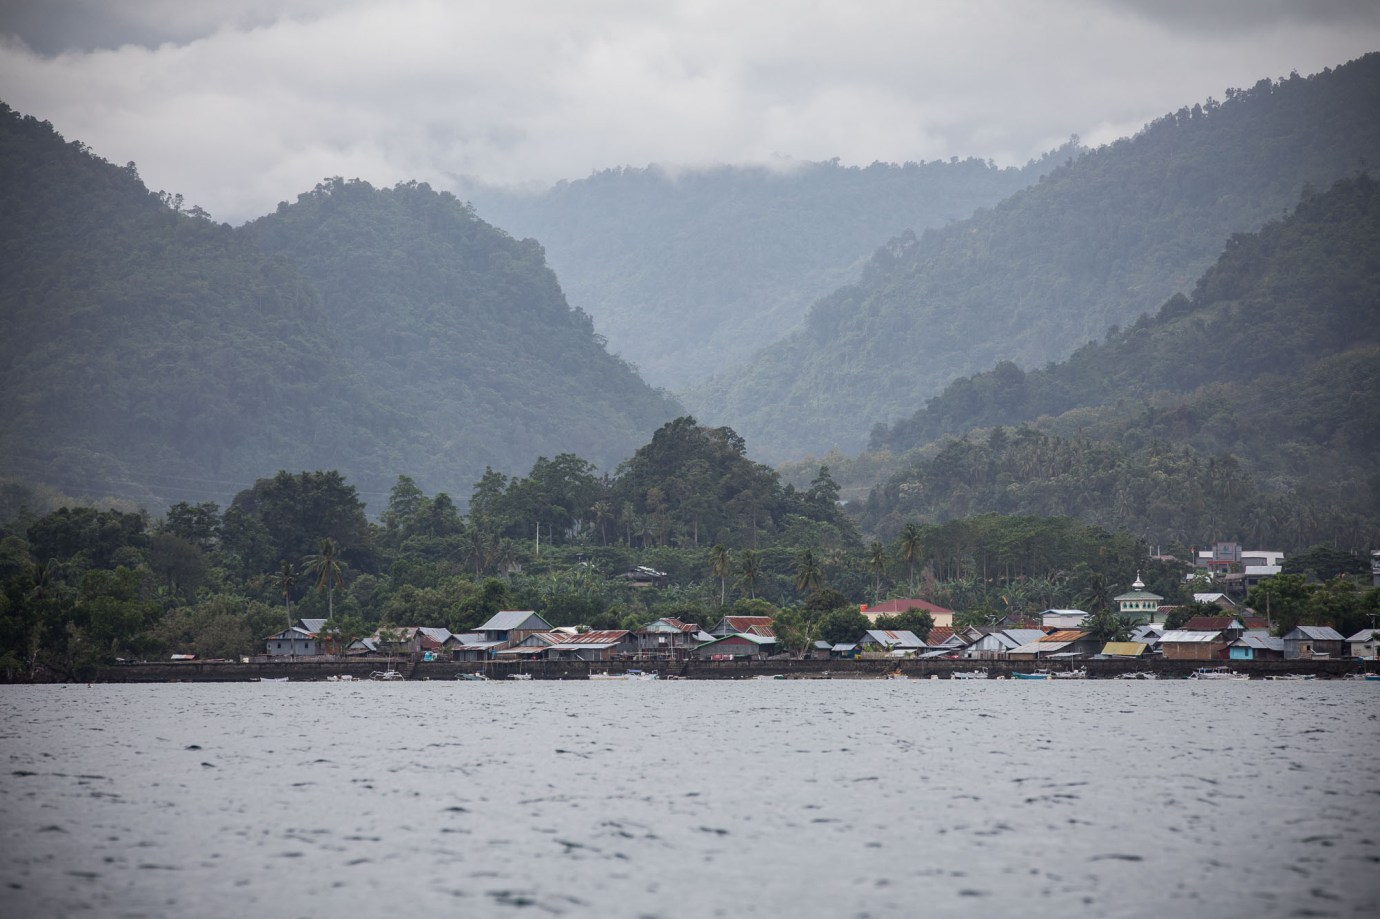 Mountains meet the shore on the Indonesian island of Sulawesi.